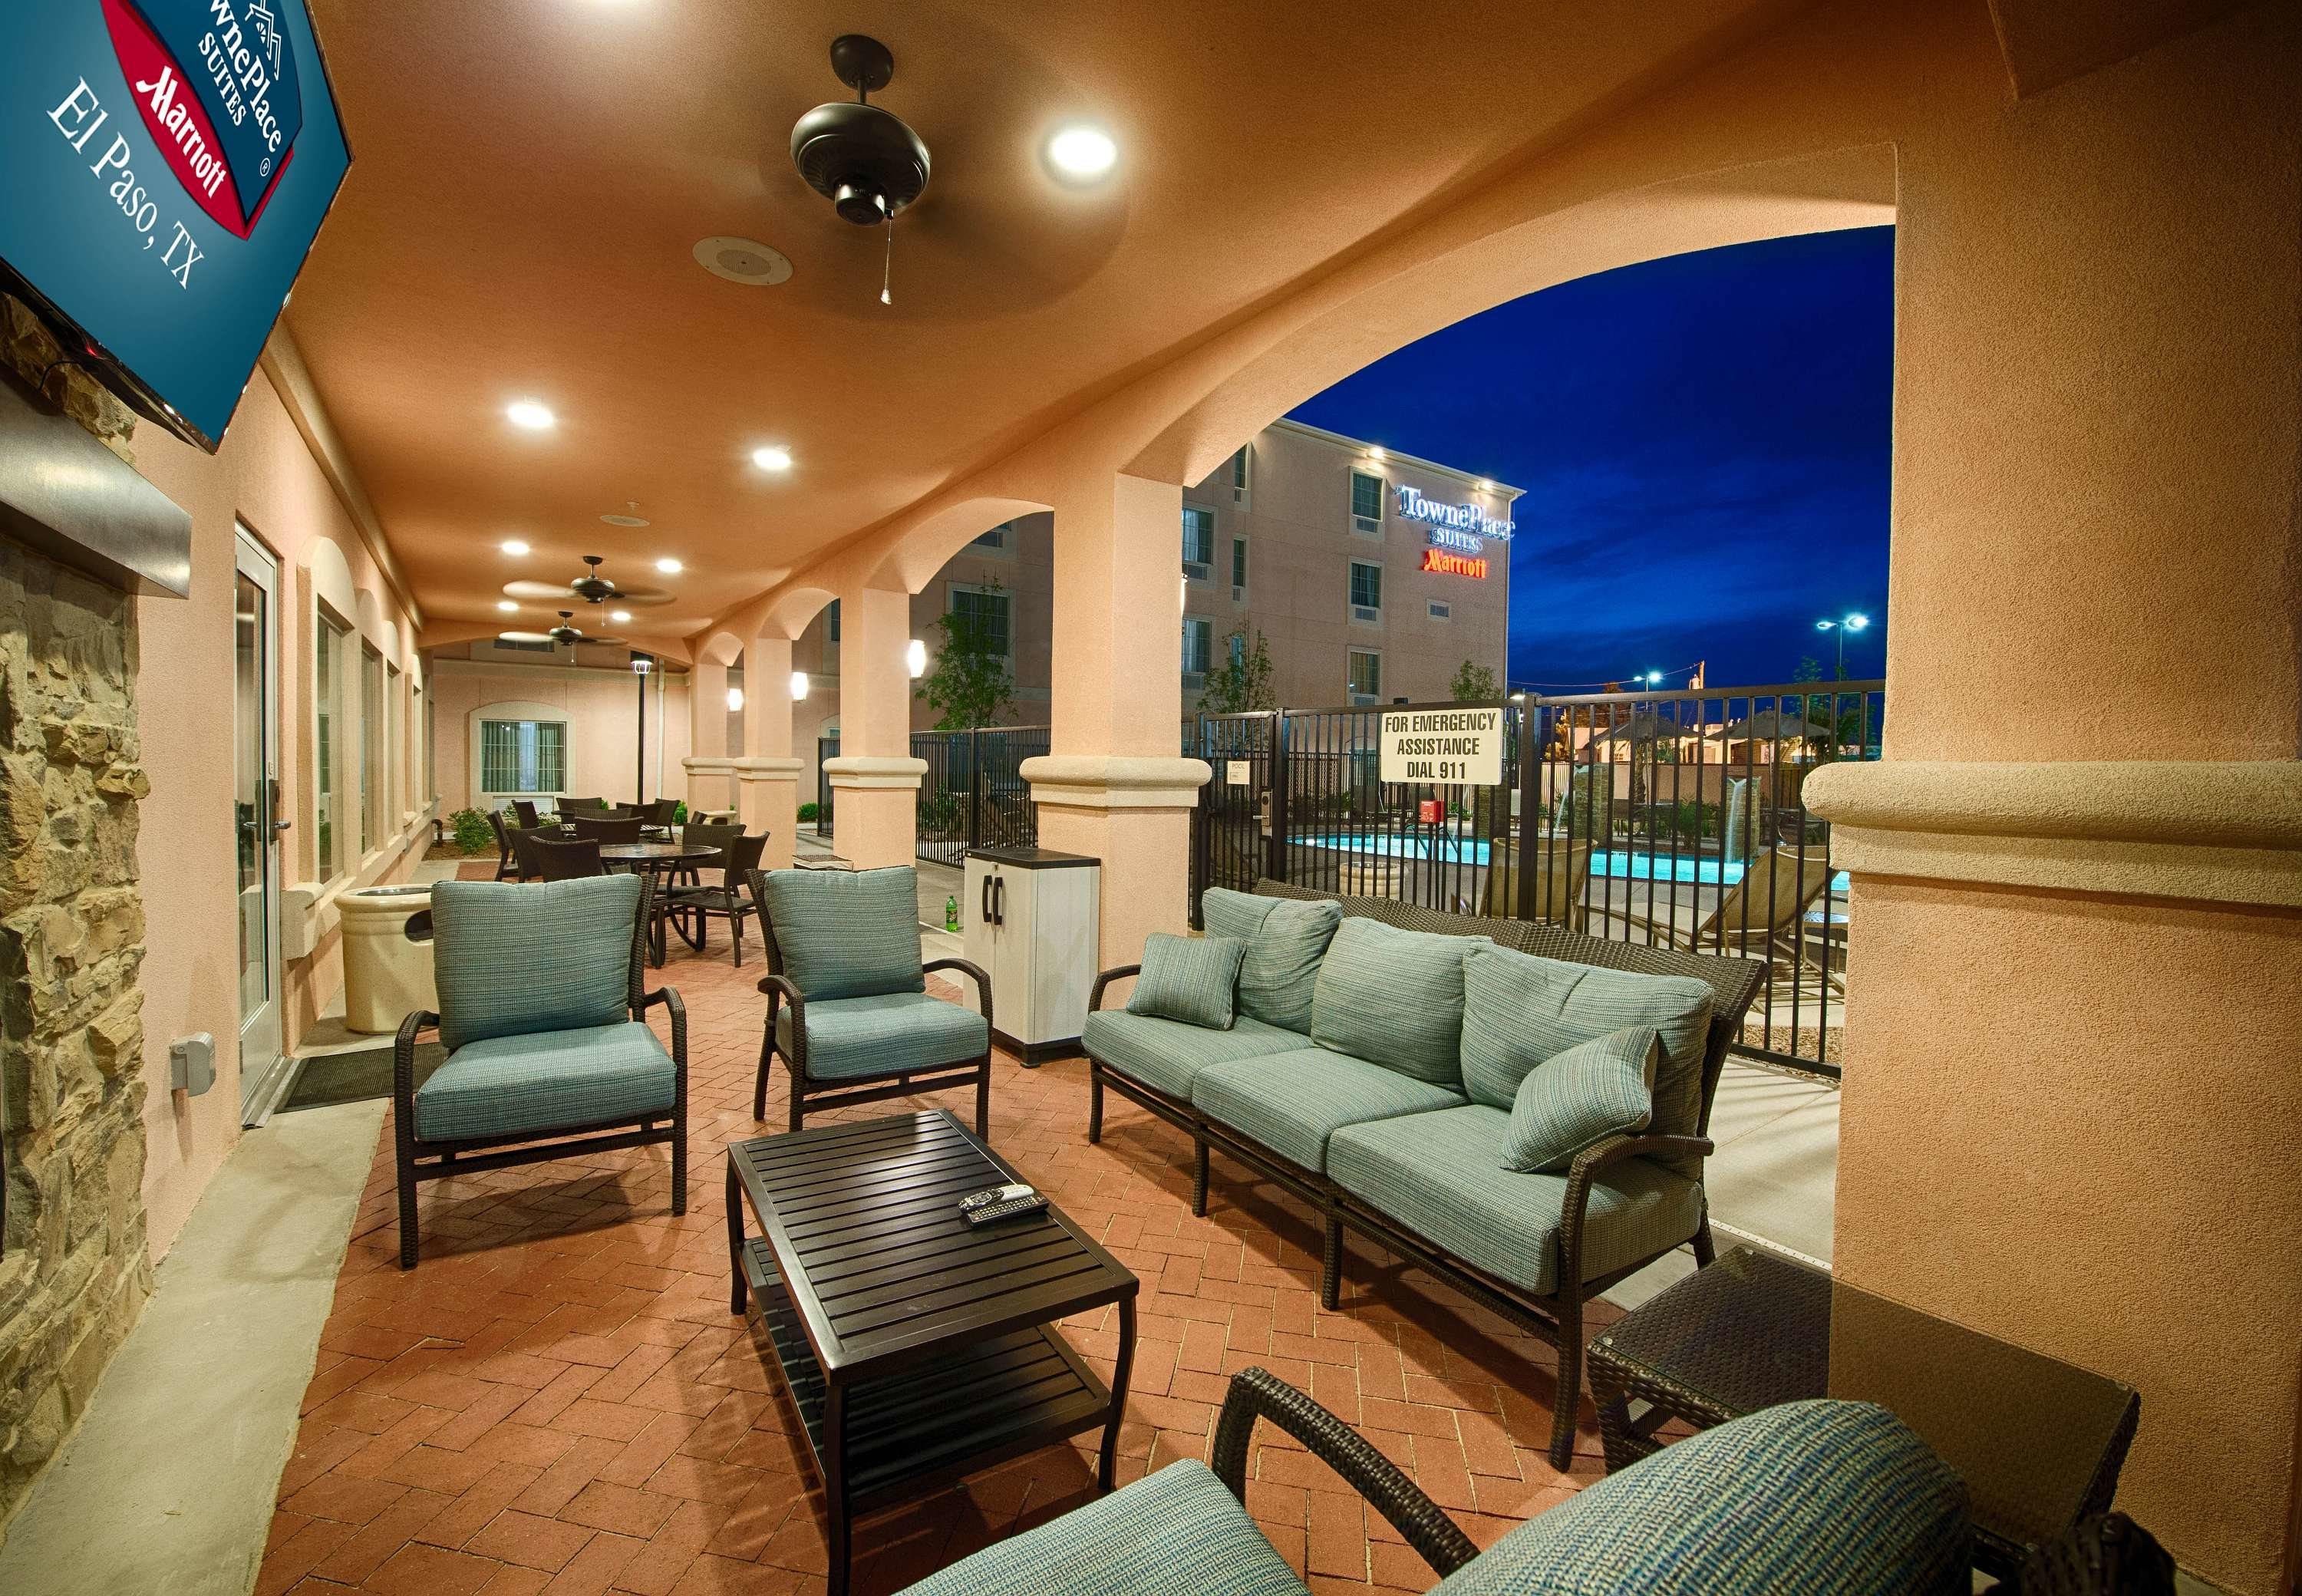 6680 gateway east - Towneplace Suites By Marriott El Paso Airport